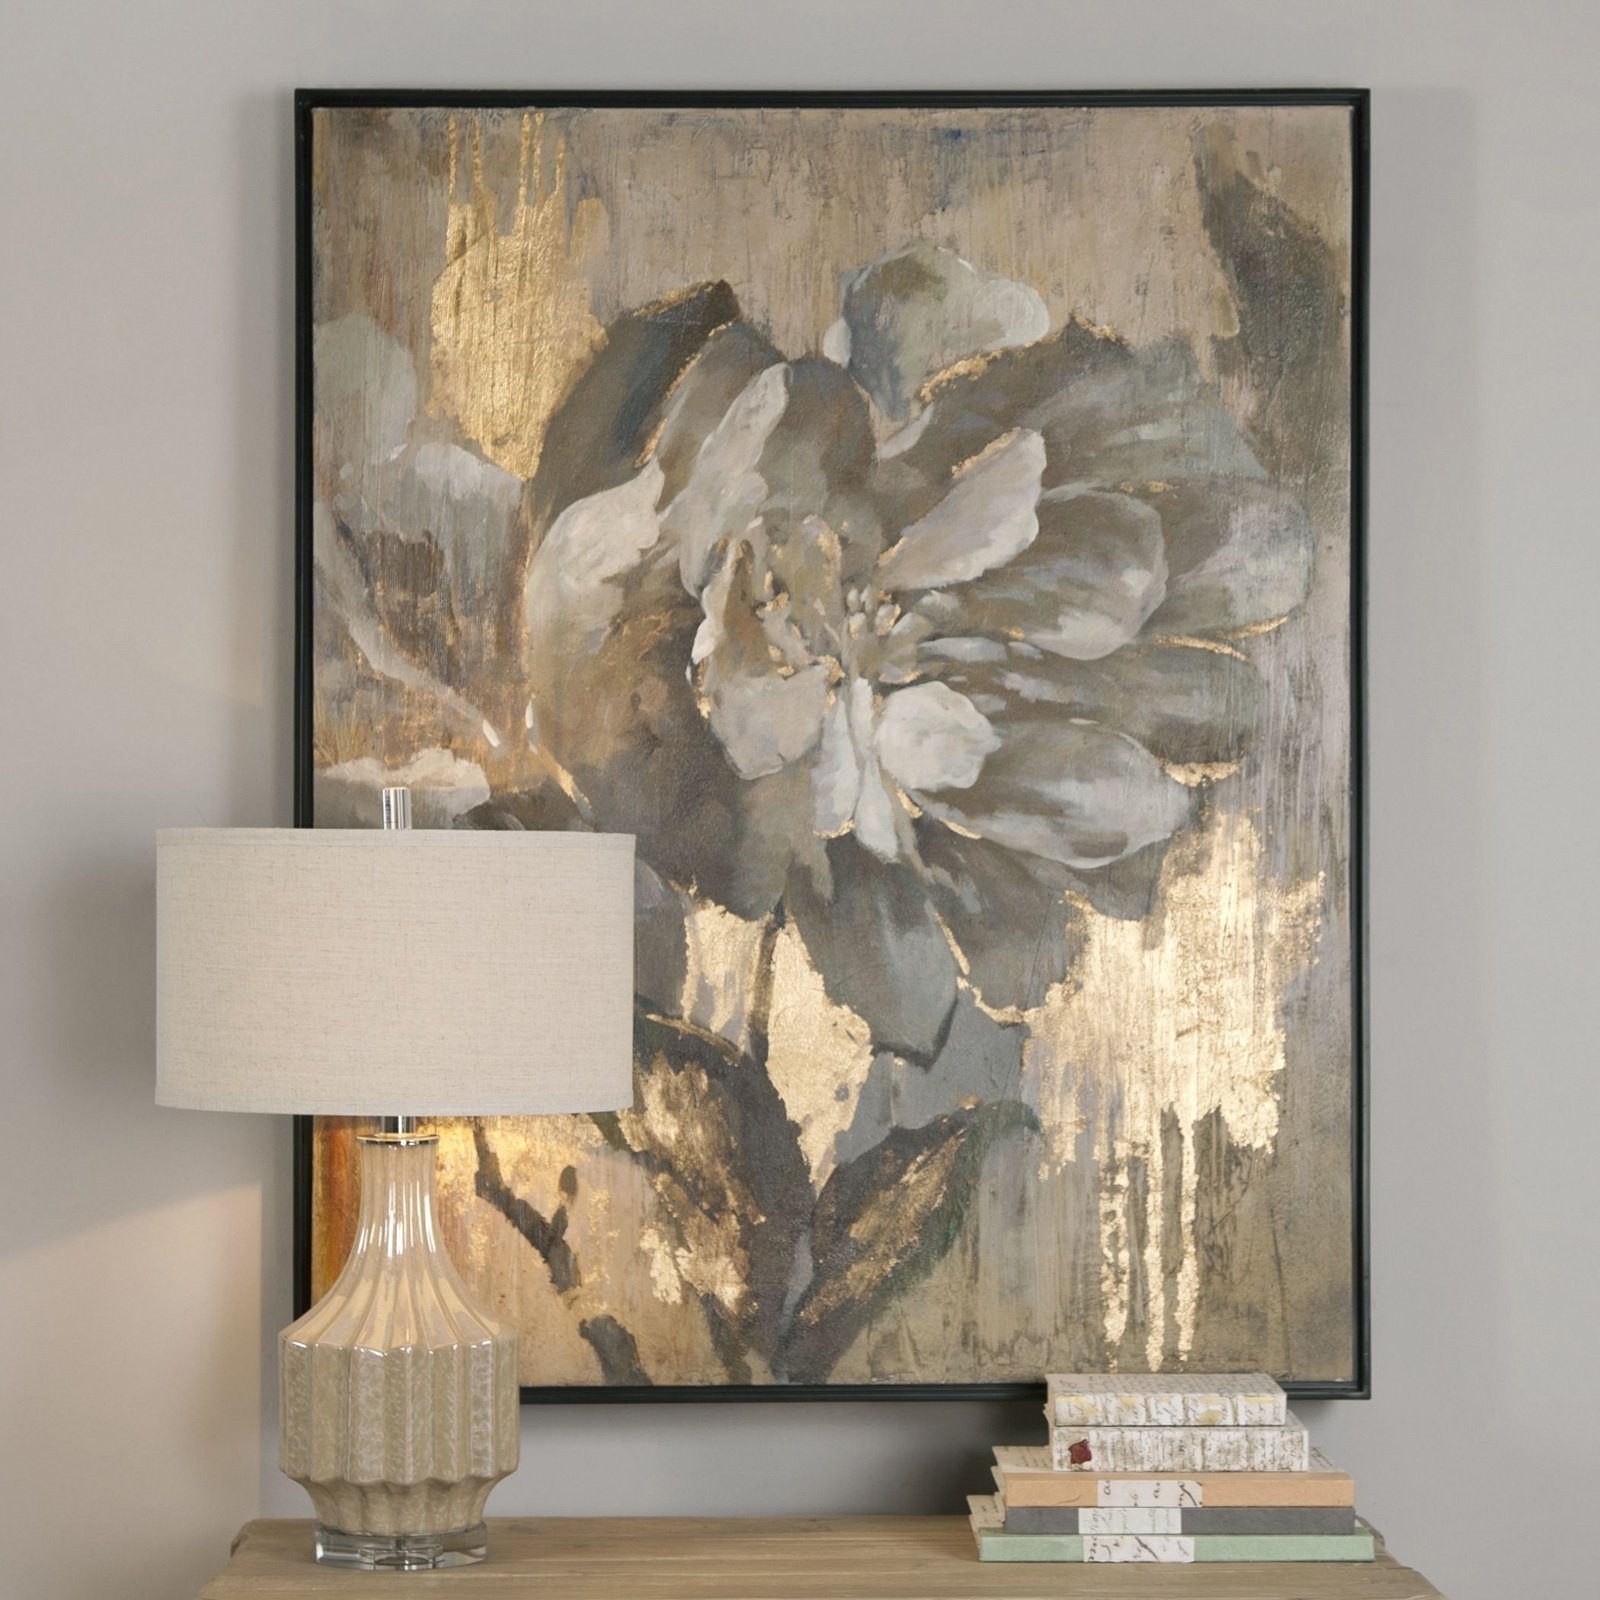 Uttermost Dazzling Floral Wall Art | Hayneedle For Most Up To Date Uttermost Wall Art (Gallery 20 of 20)